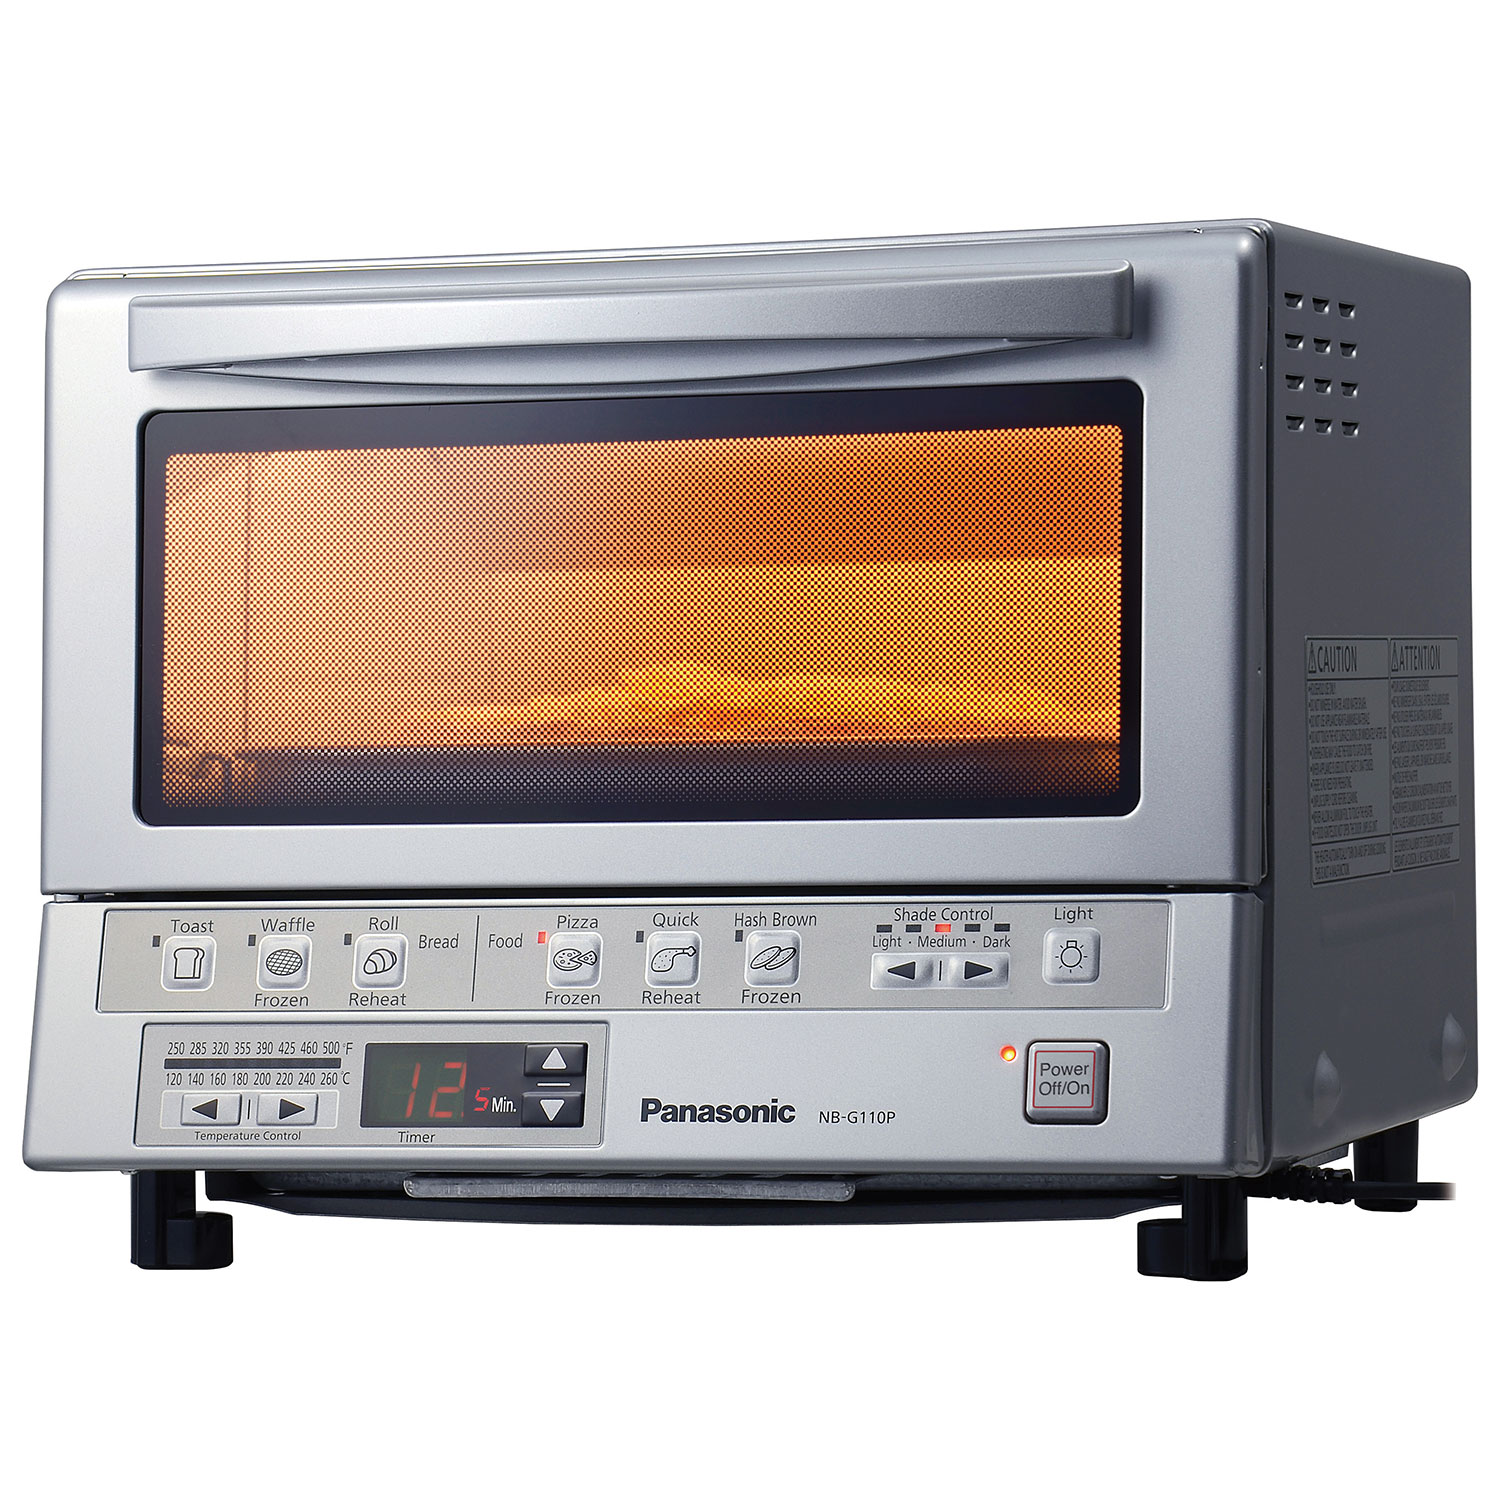 Panasonic Flashxpress Double Infrared Toaster Oven Nbg110p How Does Place Tiny Components On A Little Circuit Board Silver Ovens Best Buy Canada